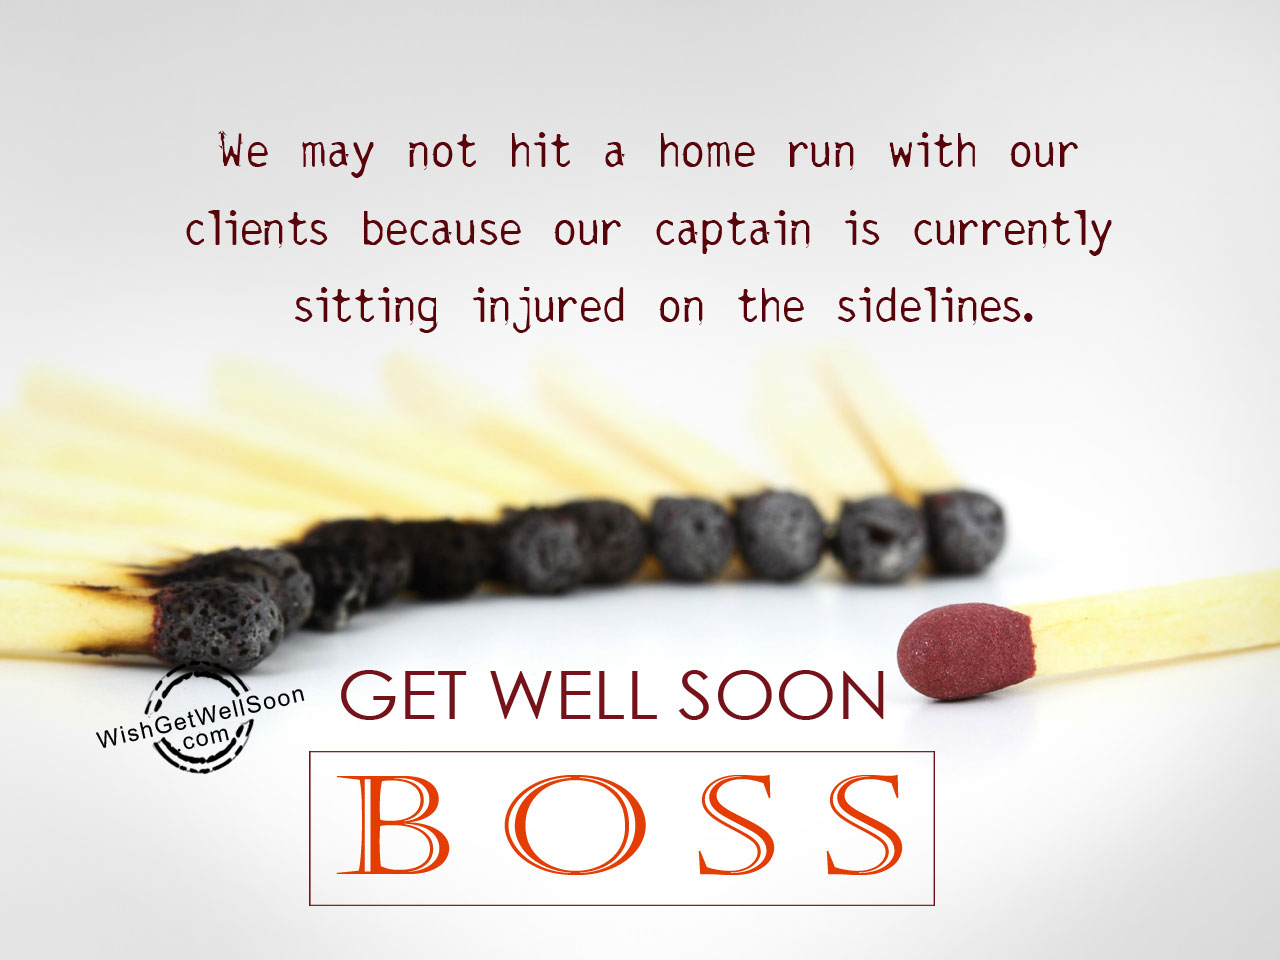 Tempting Boss Images Page Get Well Soon Wishes Get Well Soon Wishes A Friend Get Well Soon We May Not Hit Home Run Get Well Soon Wishes cards Get Well Soon Wishes